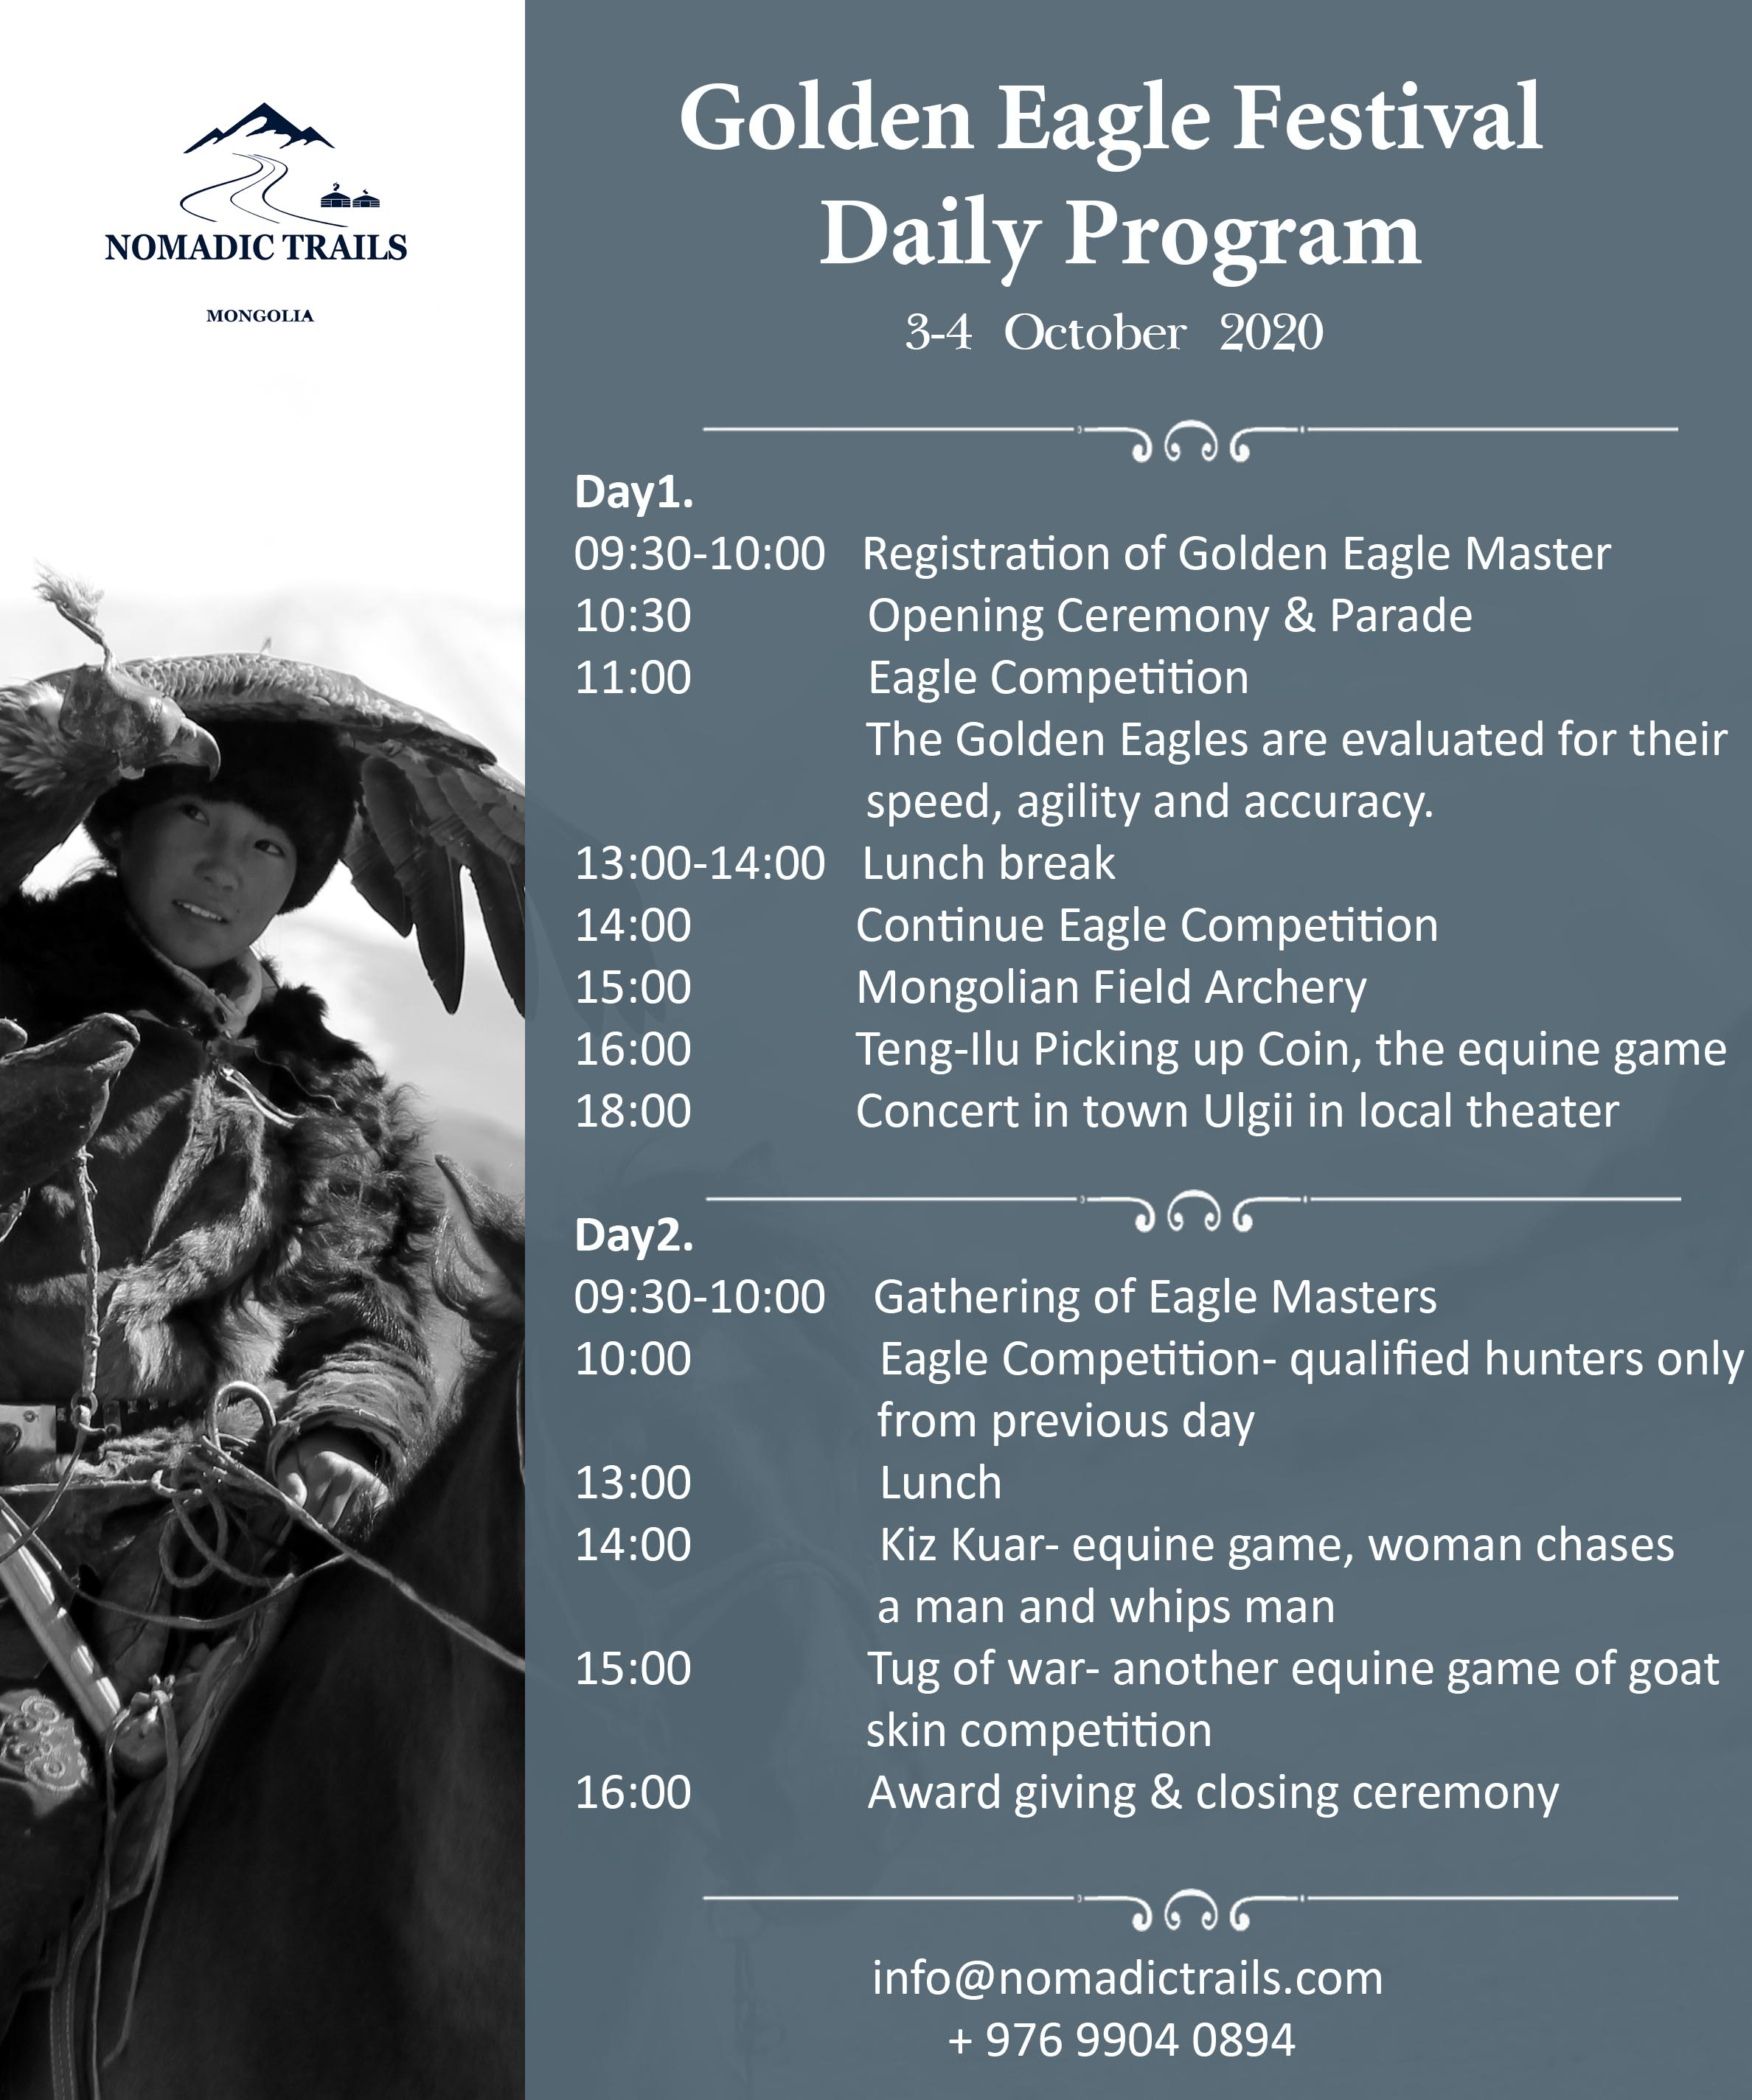 Golden Eagle Festival Daily Program